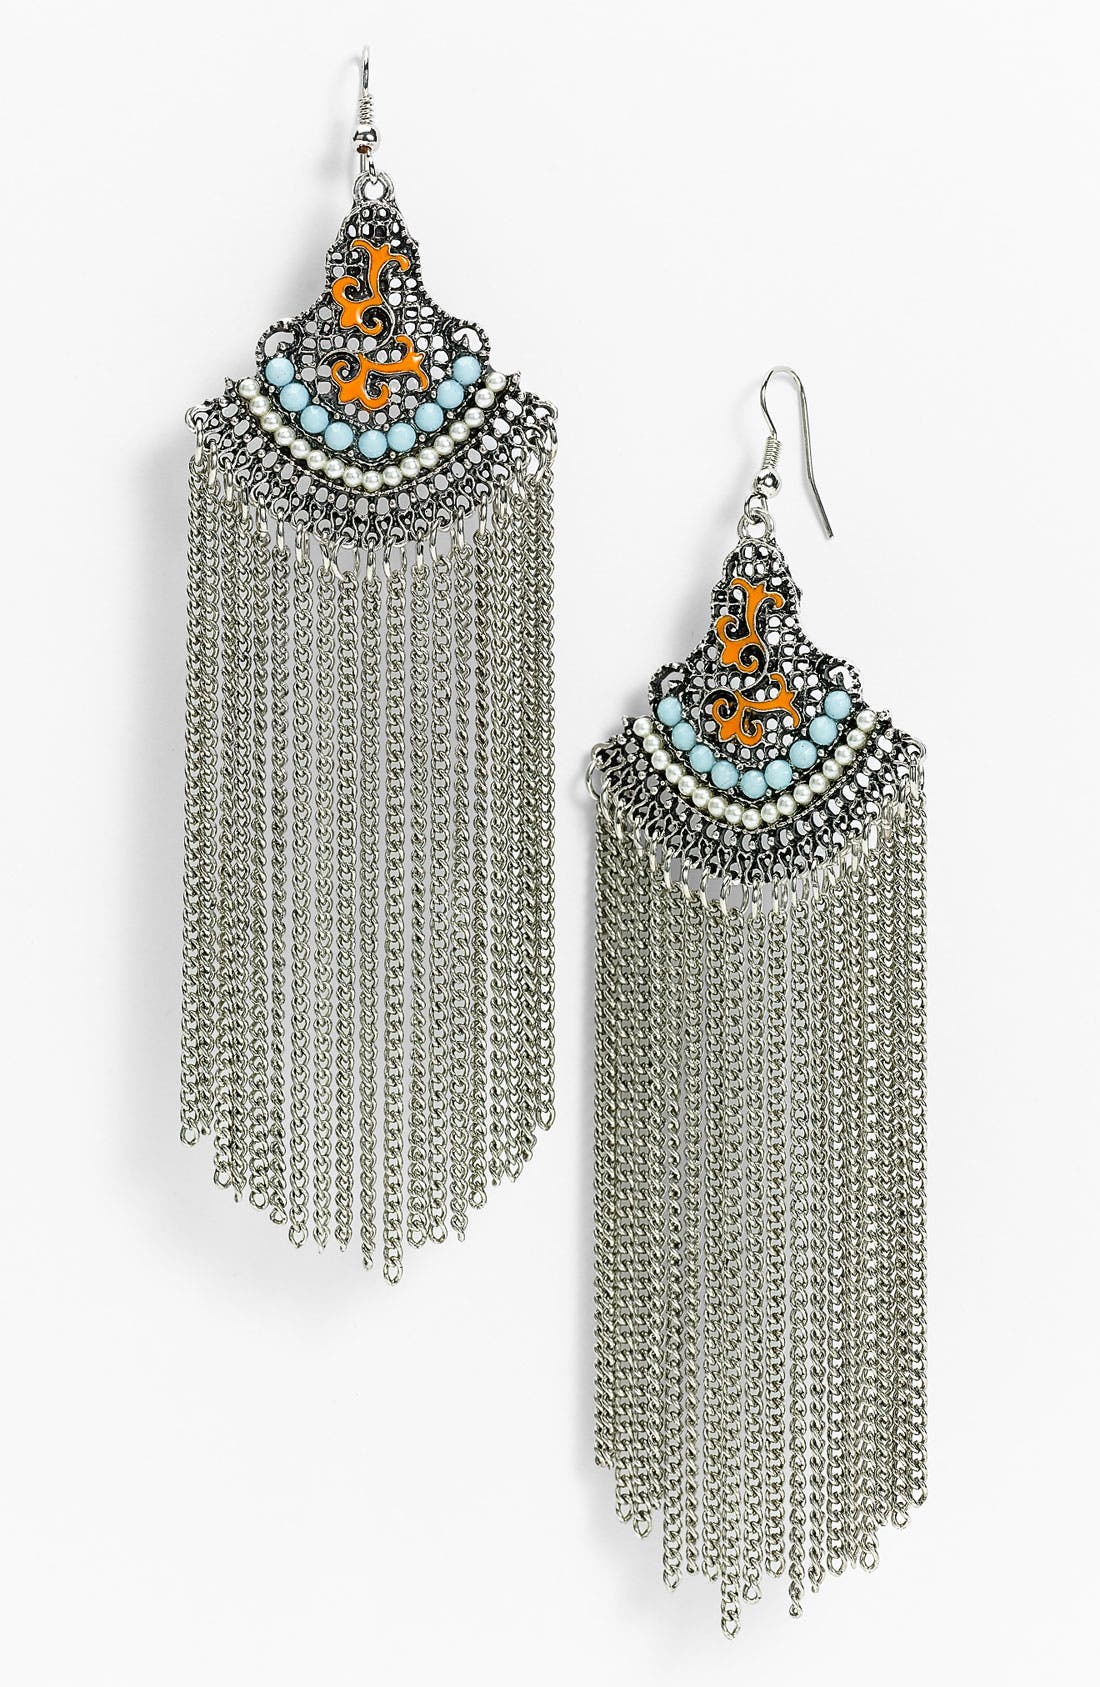 Alternate Image 1 Selected - Cara Couture 'Tribal' Chain Fringe Statement Earrings